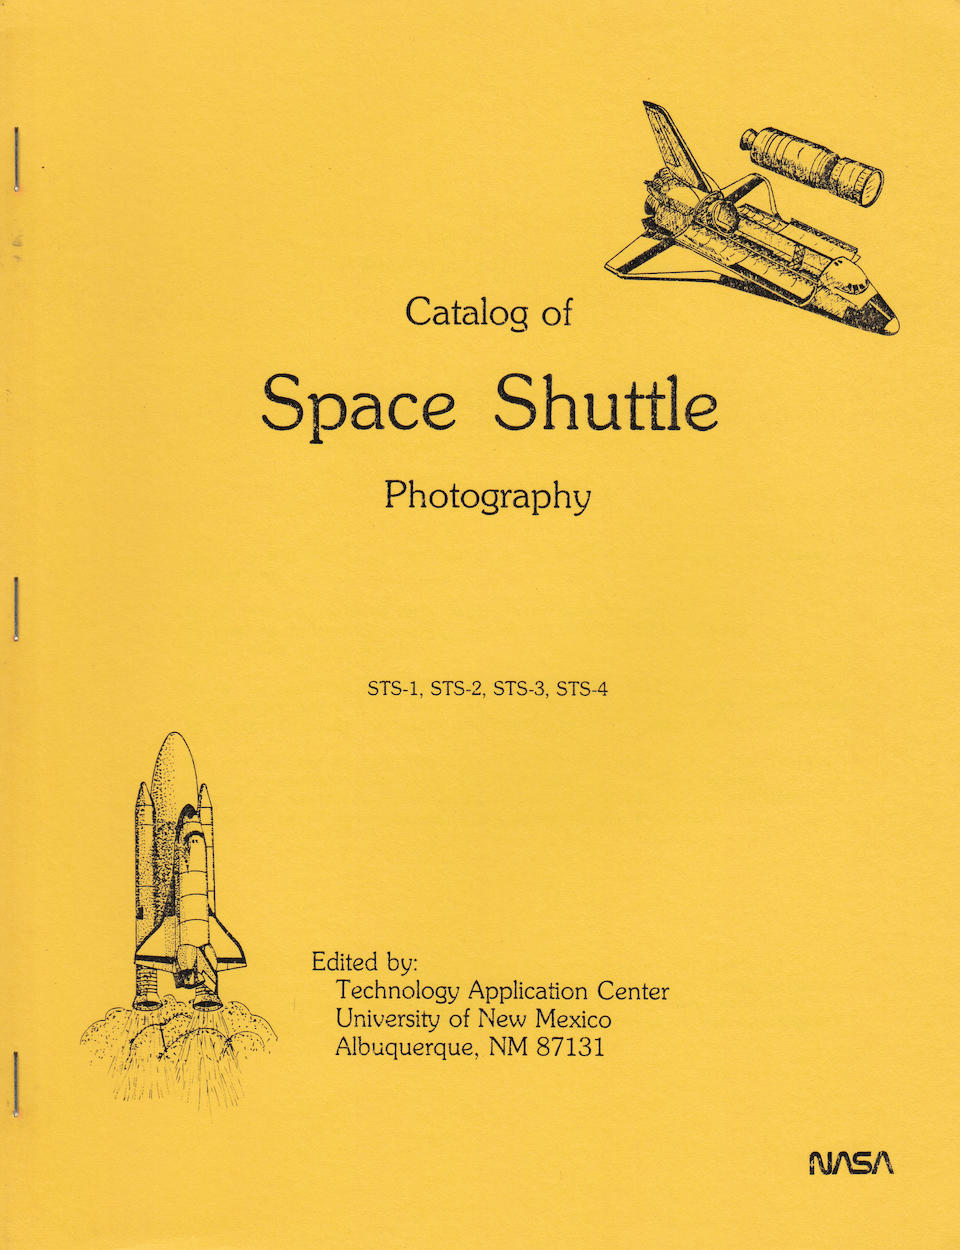 THE EXACT LOCATIONS OF EARTH PHOTOGRAPHY TAKEN BY SHUTTLE ASTRONAUTS.